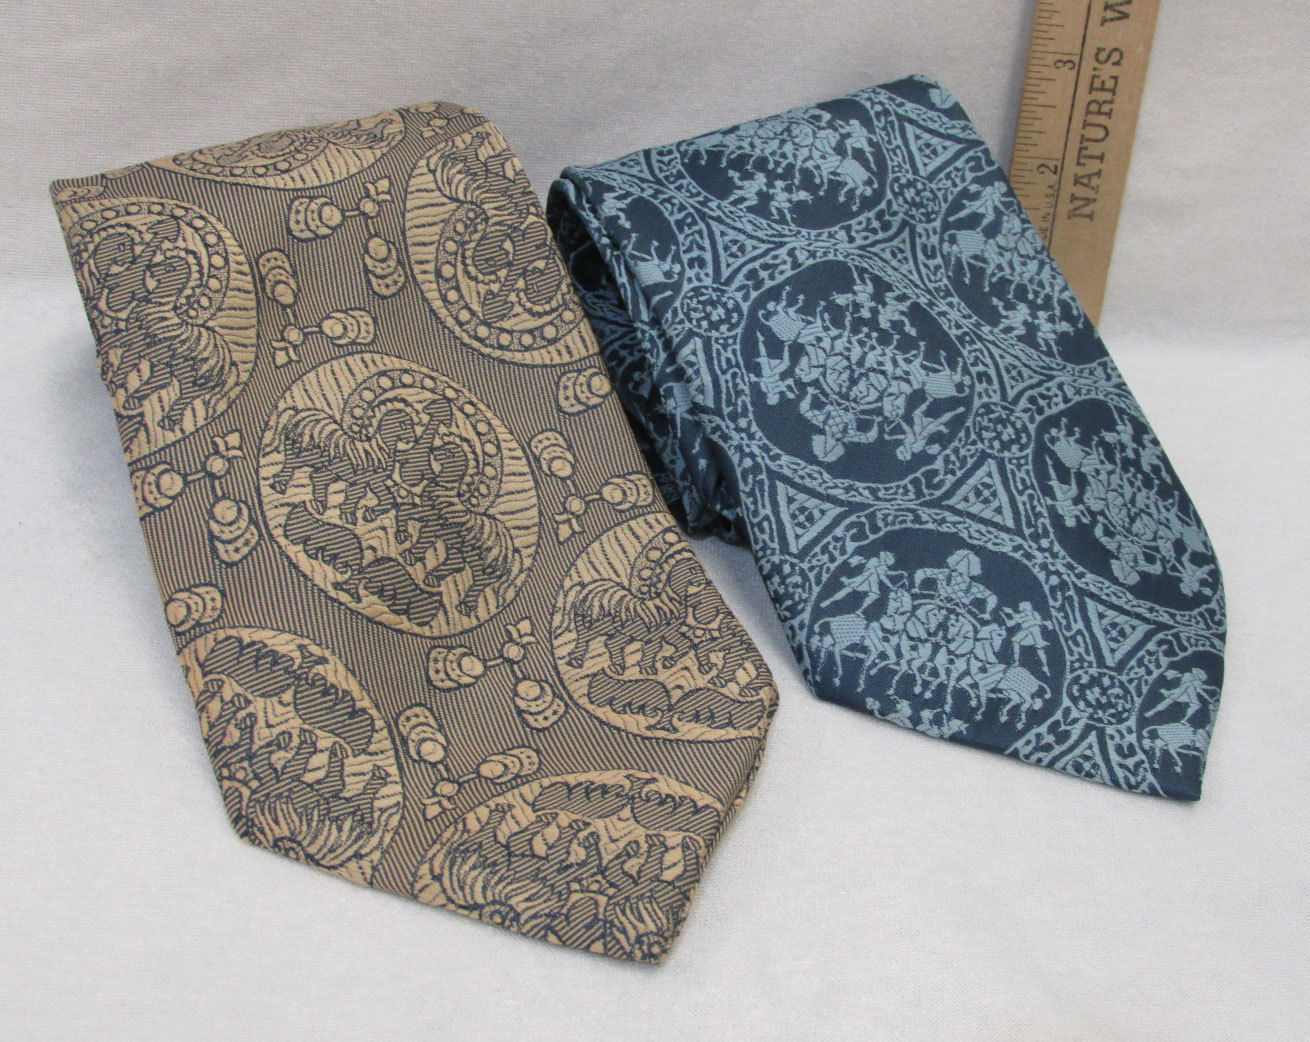 Primary image for 2 Vintage Mens Neck Ties No Name Brand Dacron Polyester Blue & Gold